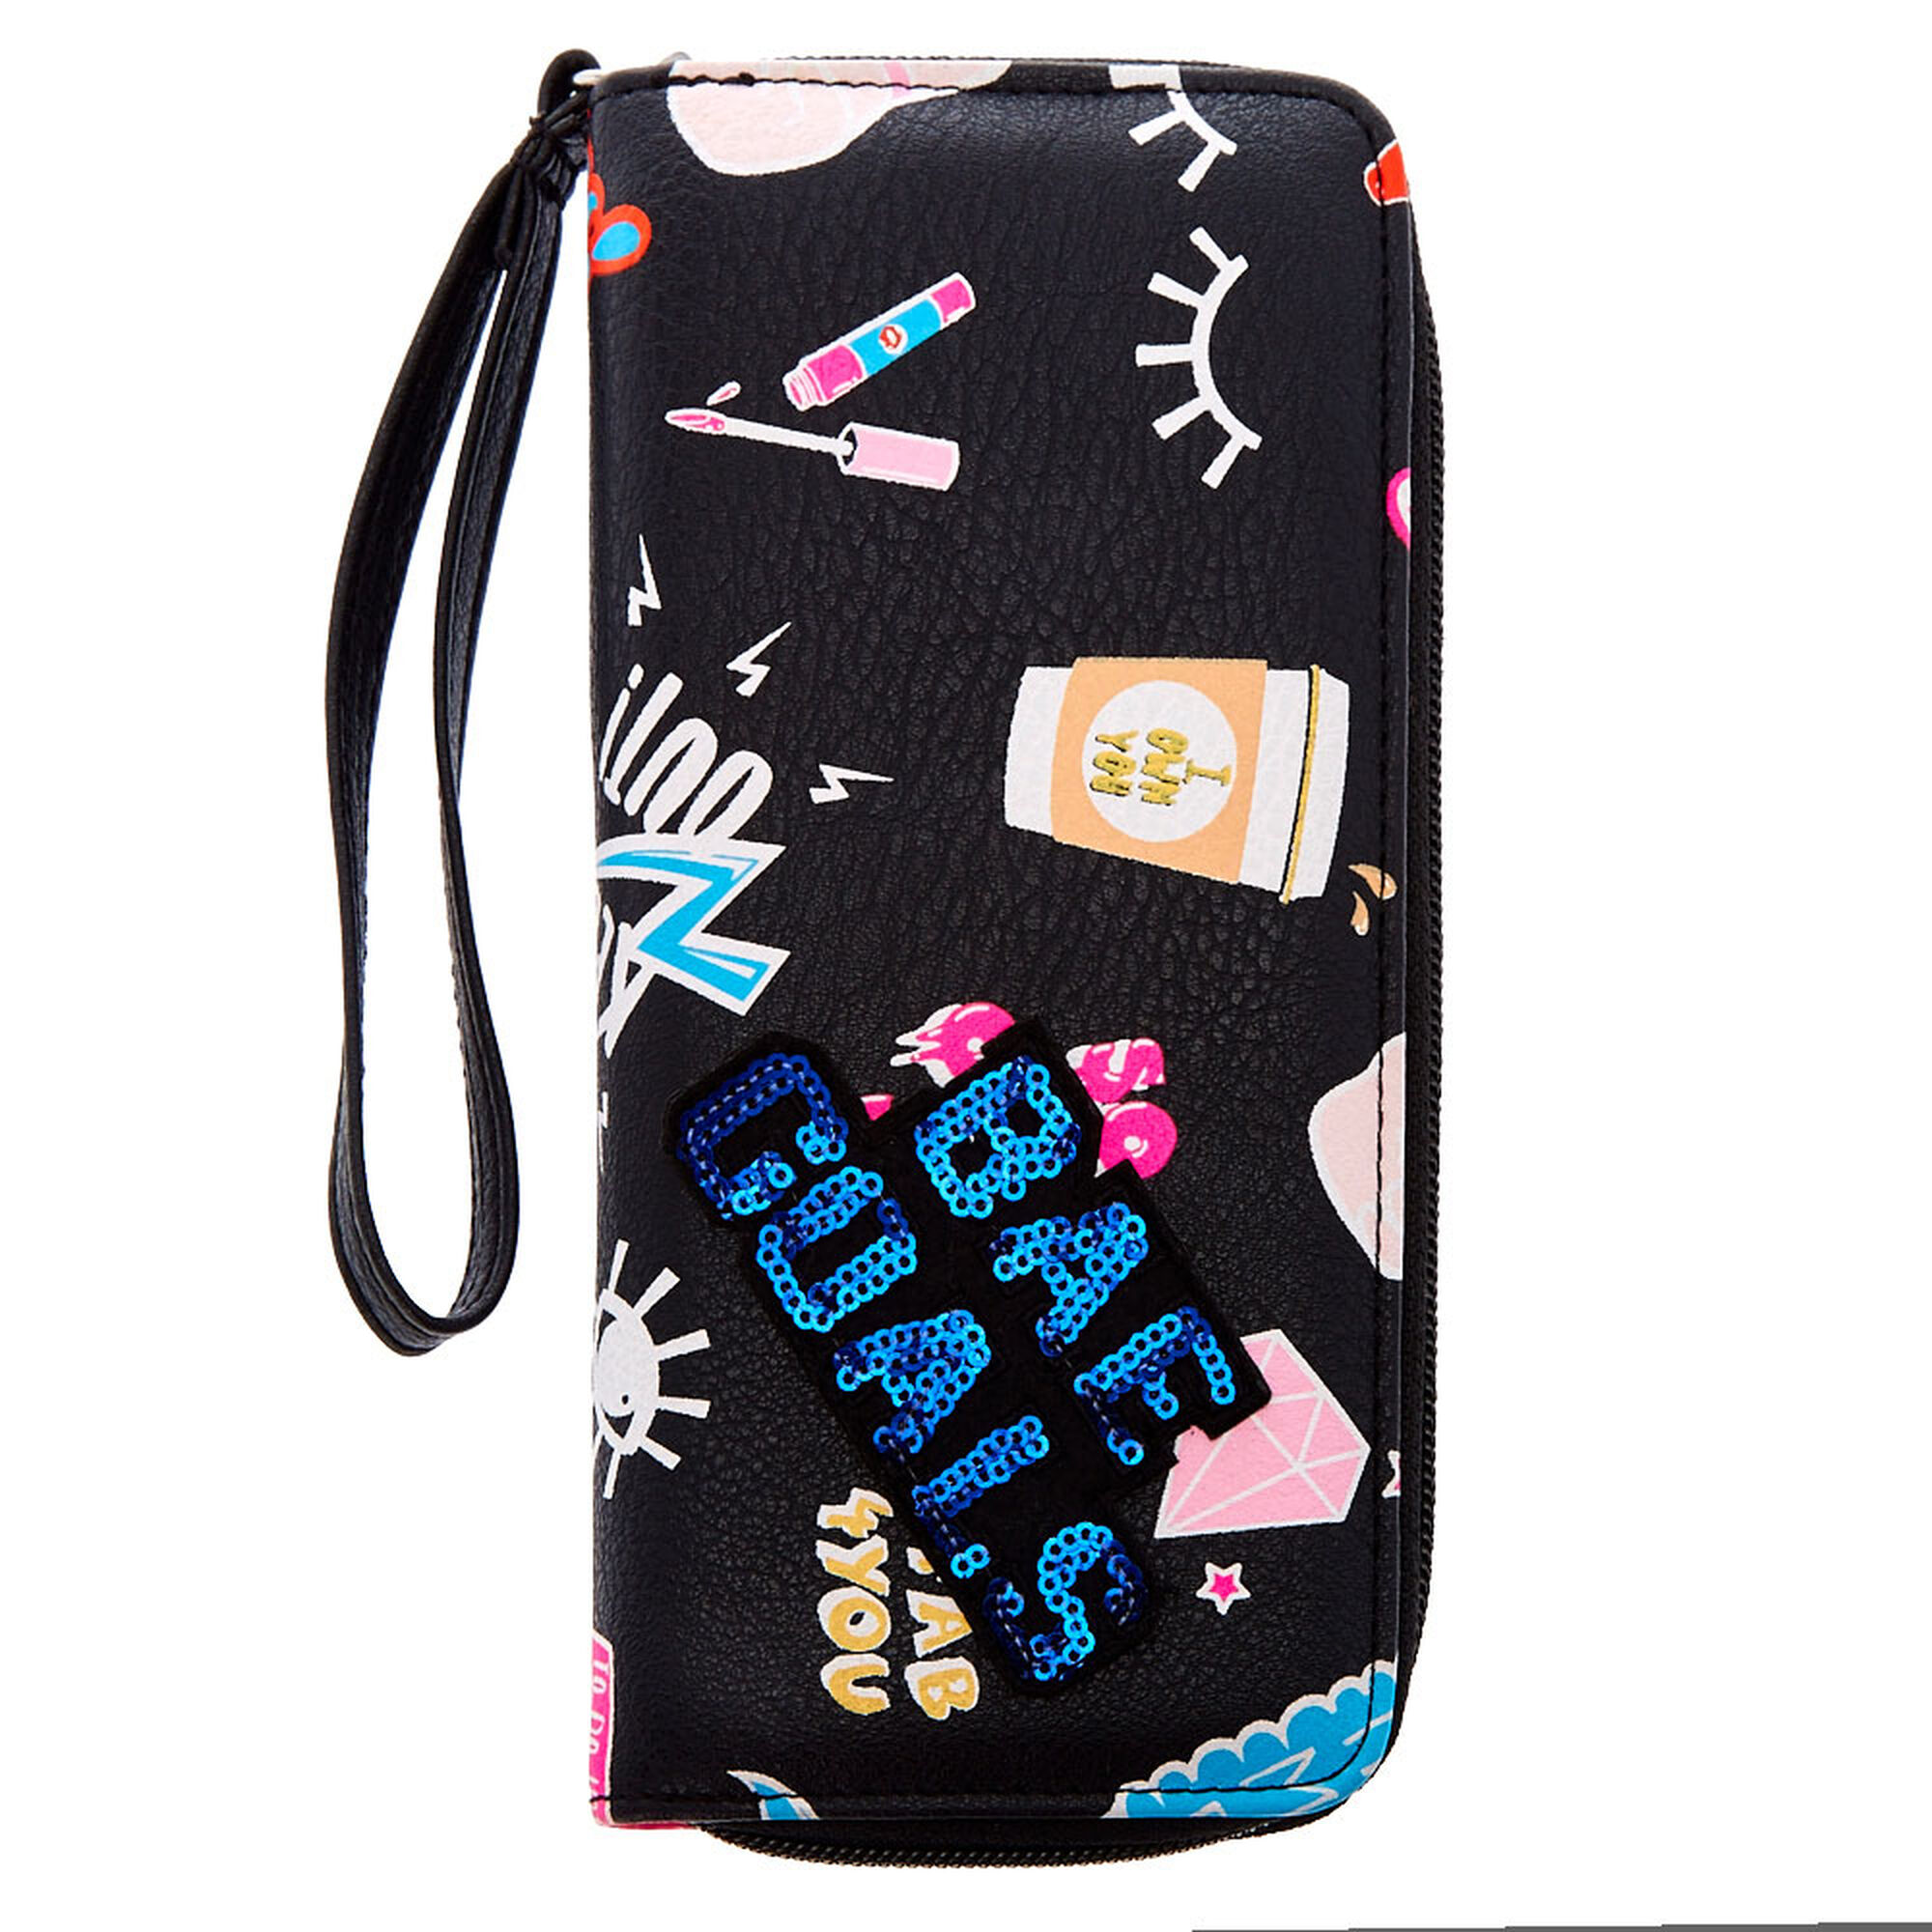 bags wallets bag charms claire s us